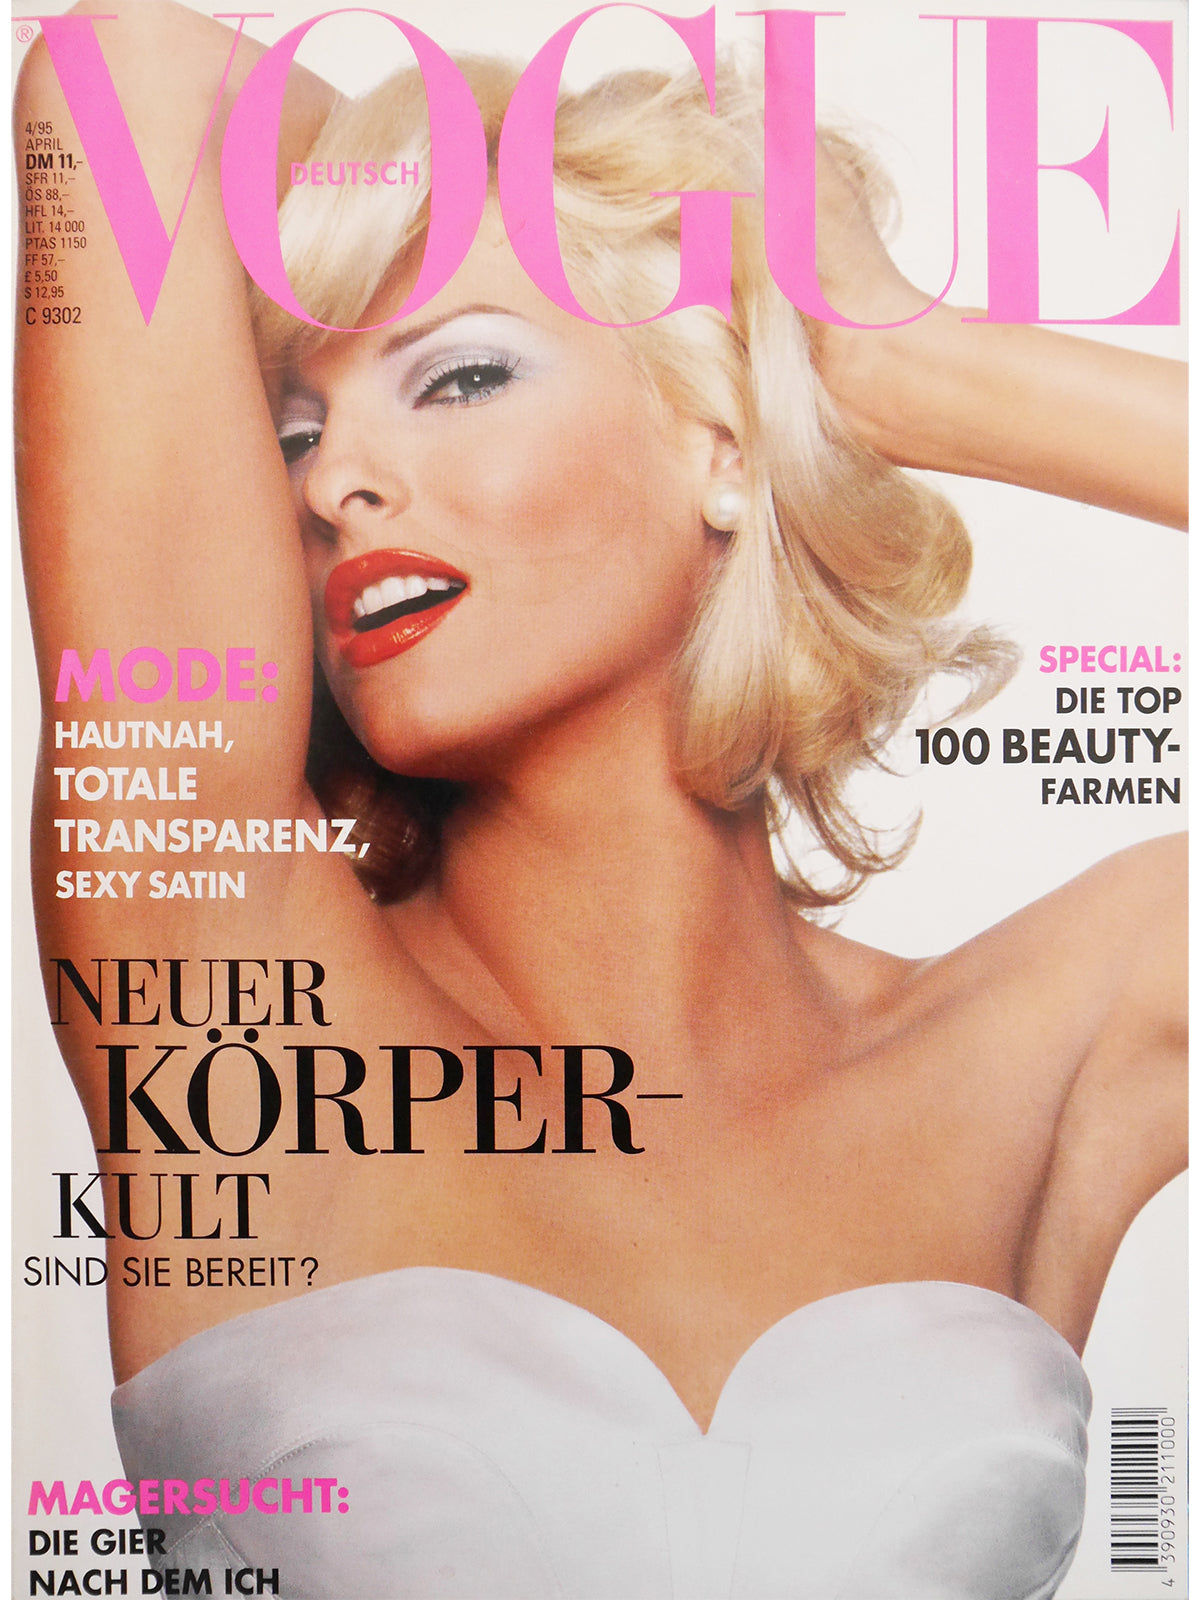 Archived - VOGUE Germany April 1995